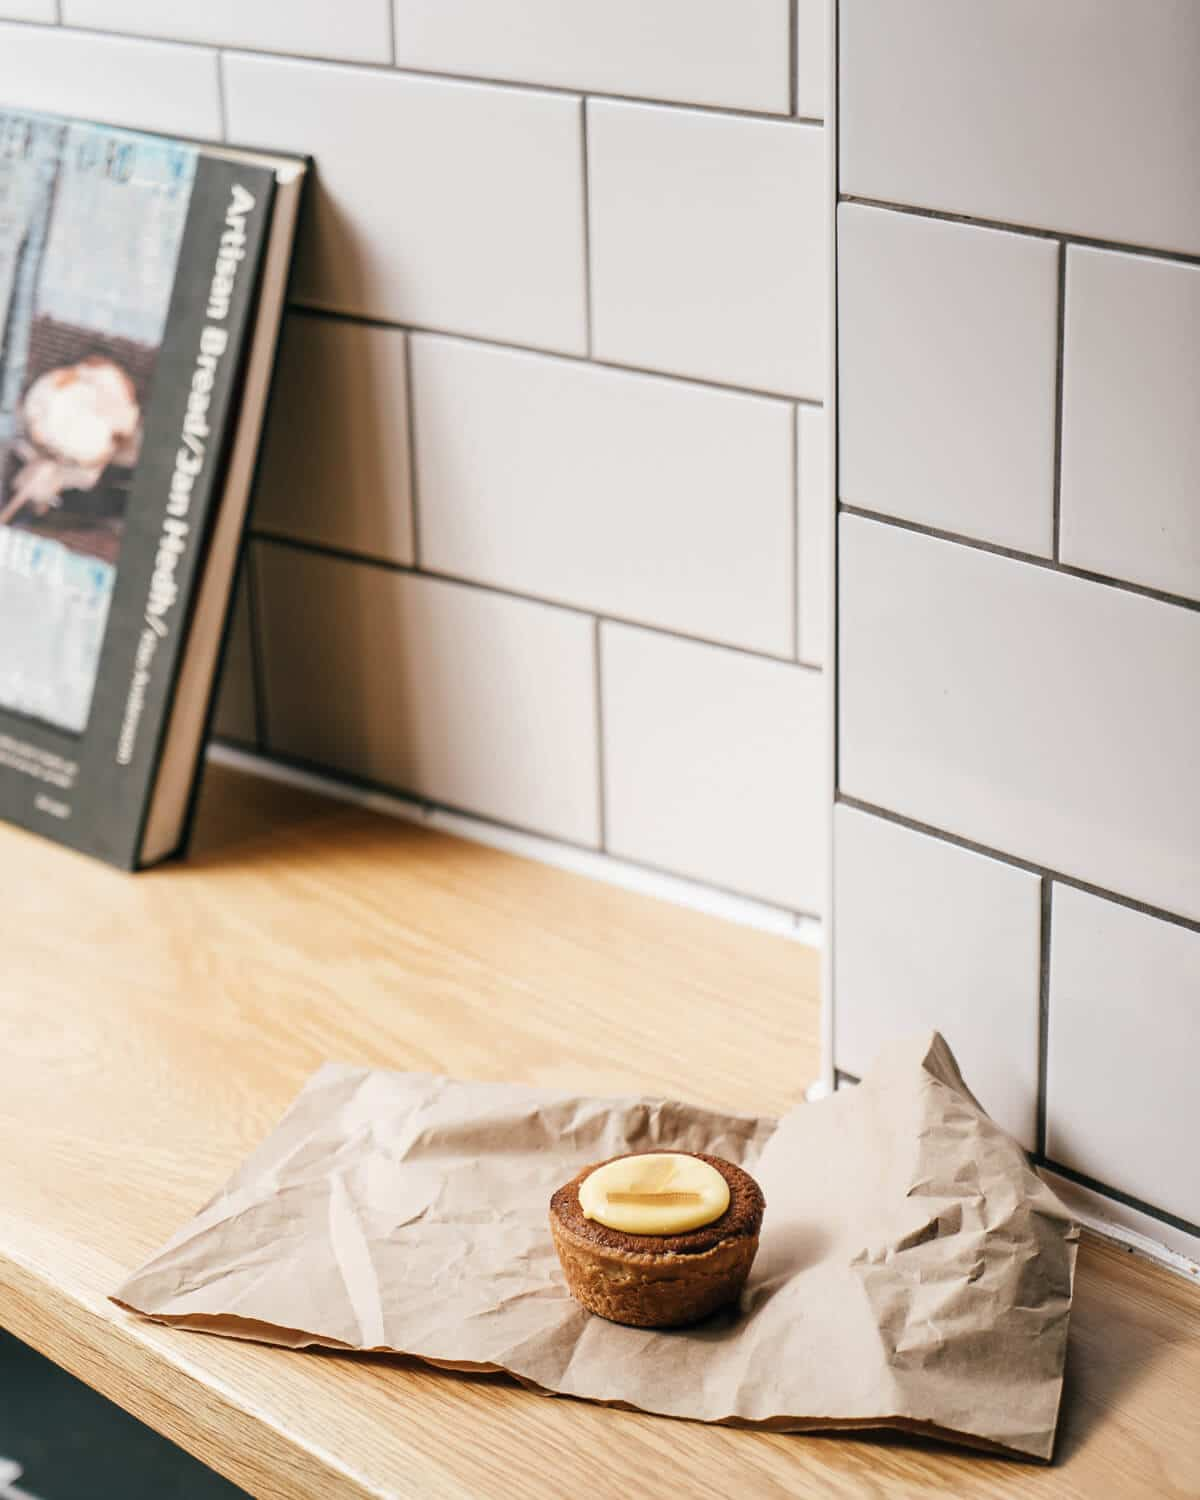 Edinburgh coffee shops - Soderberg Bakery